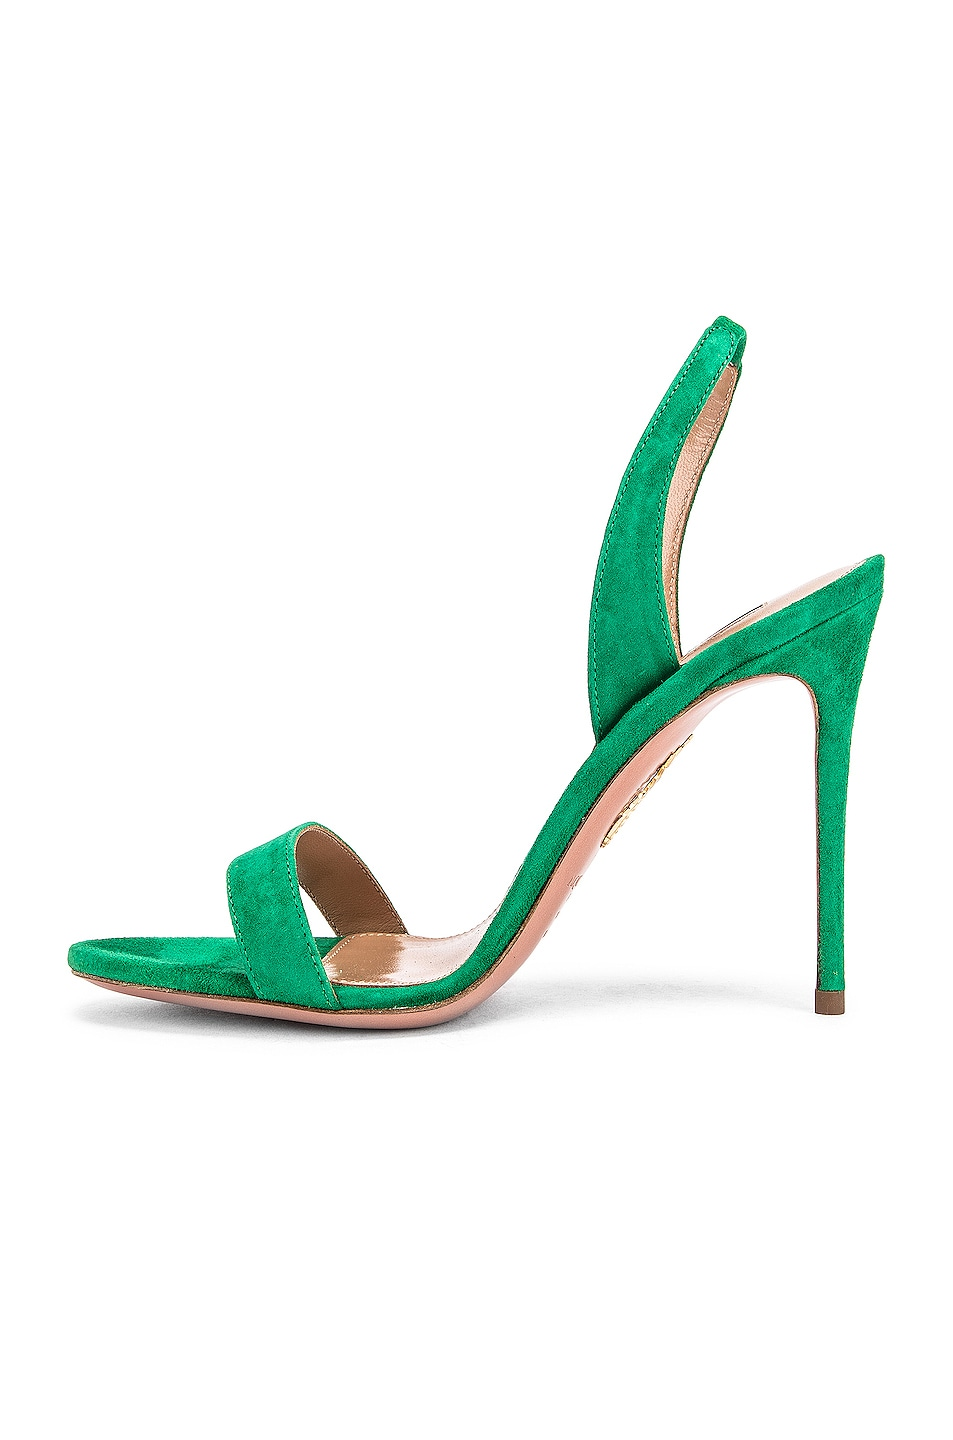 Image 5 of Aquazzura So Nude Suede 105 Sandal in Jungle Green